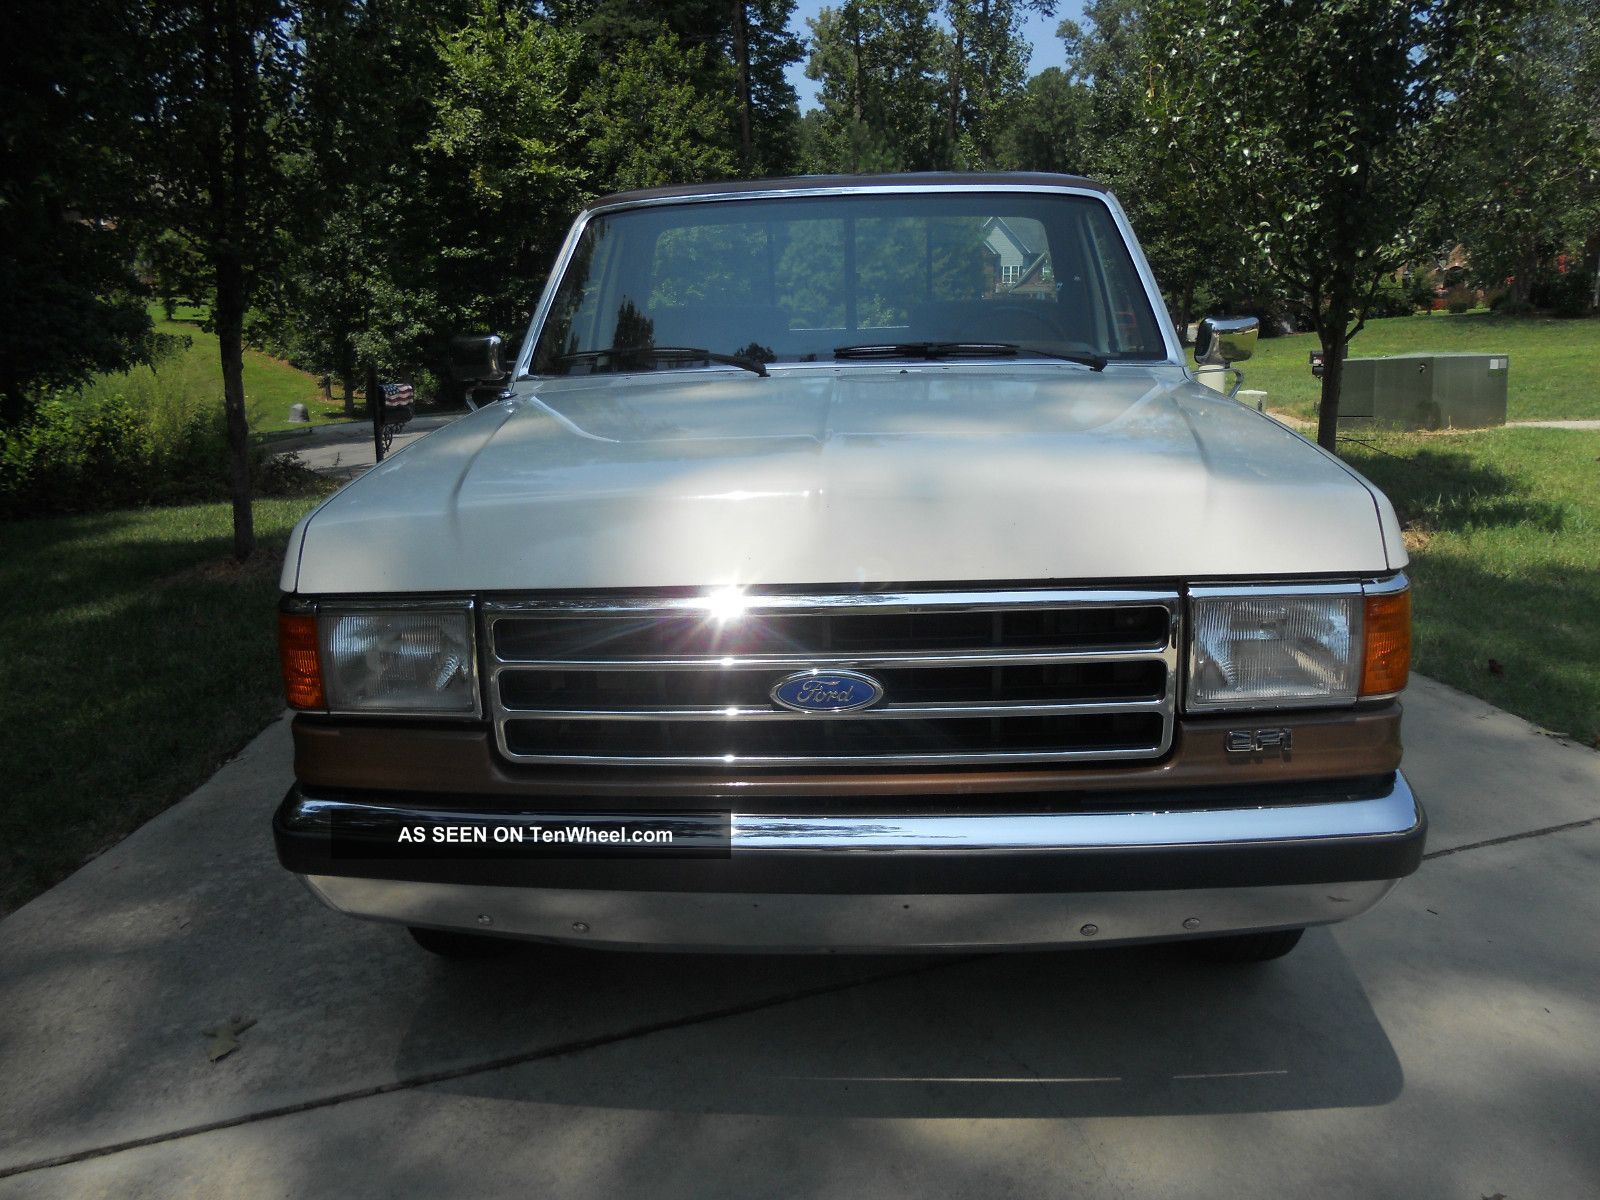 Ford f-150 1990 photo - 3